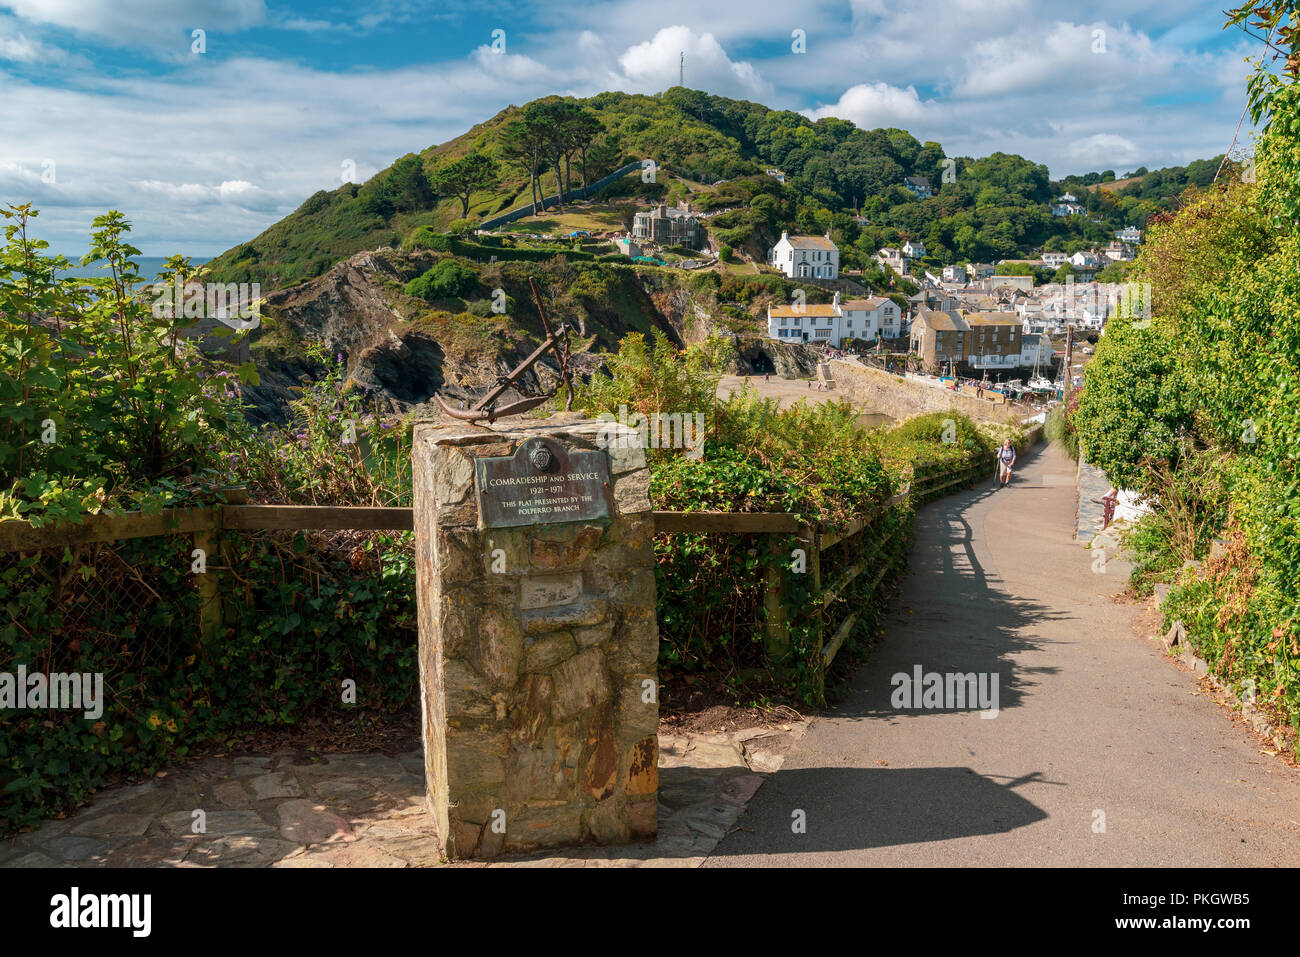 Engraved memorial stone and anchor above the the seaside village of  Polperro, South Cornwall, England, UK - Stock Image